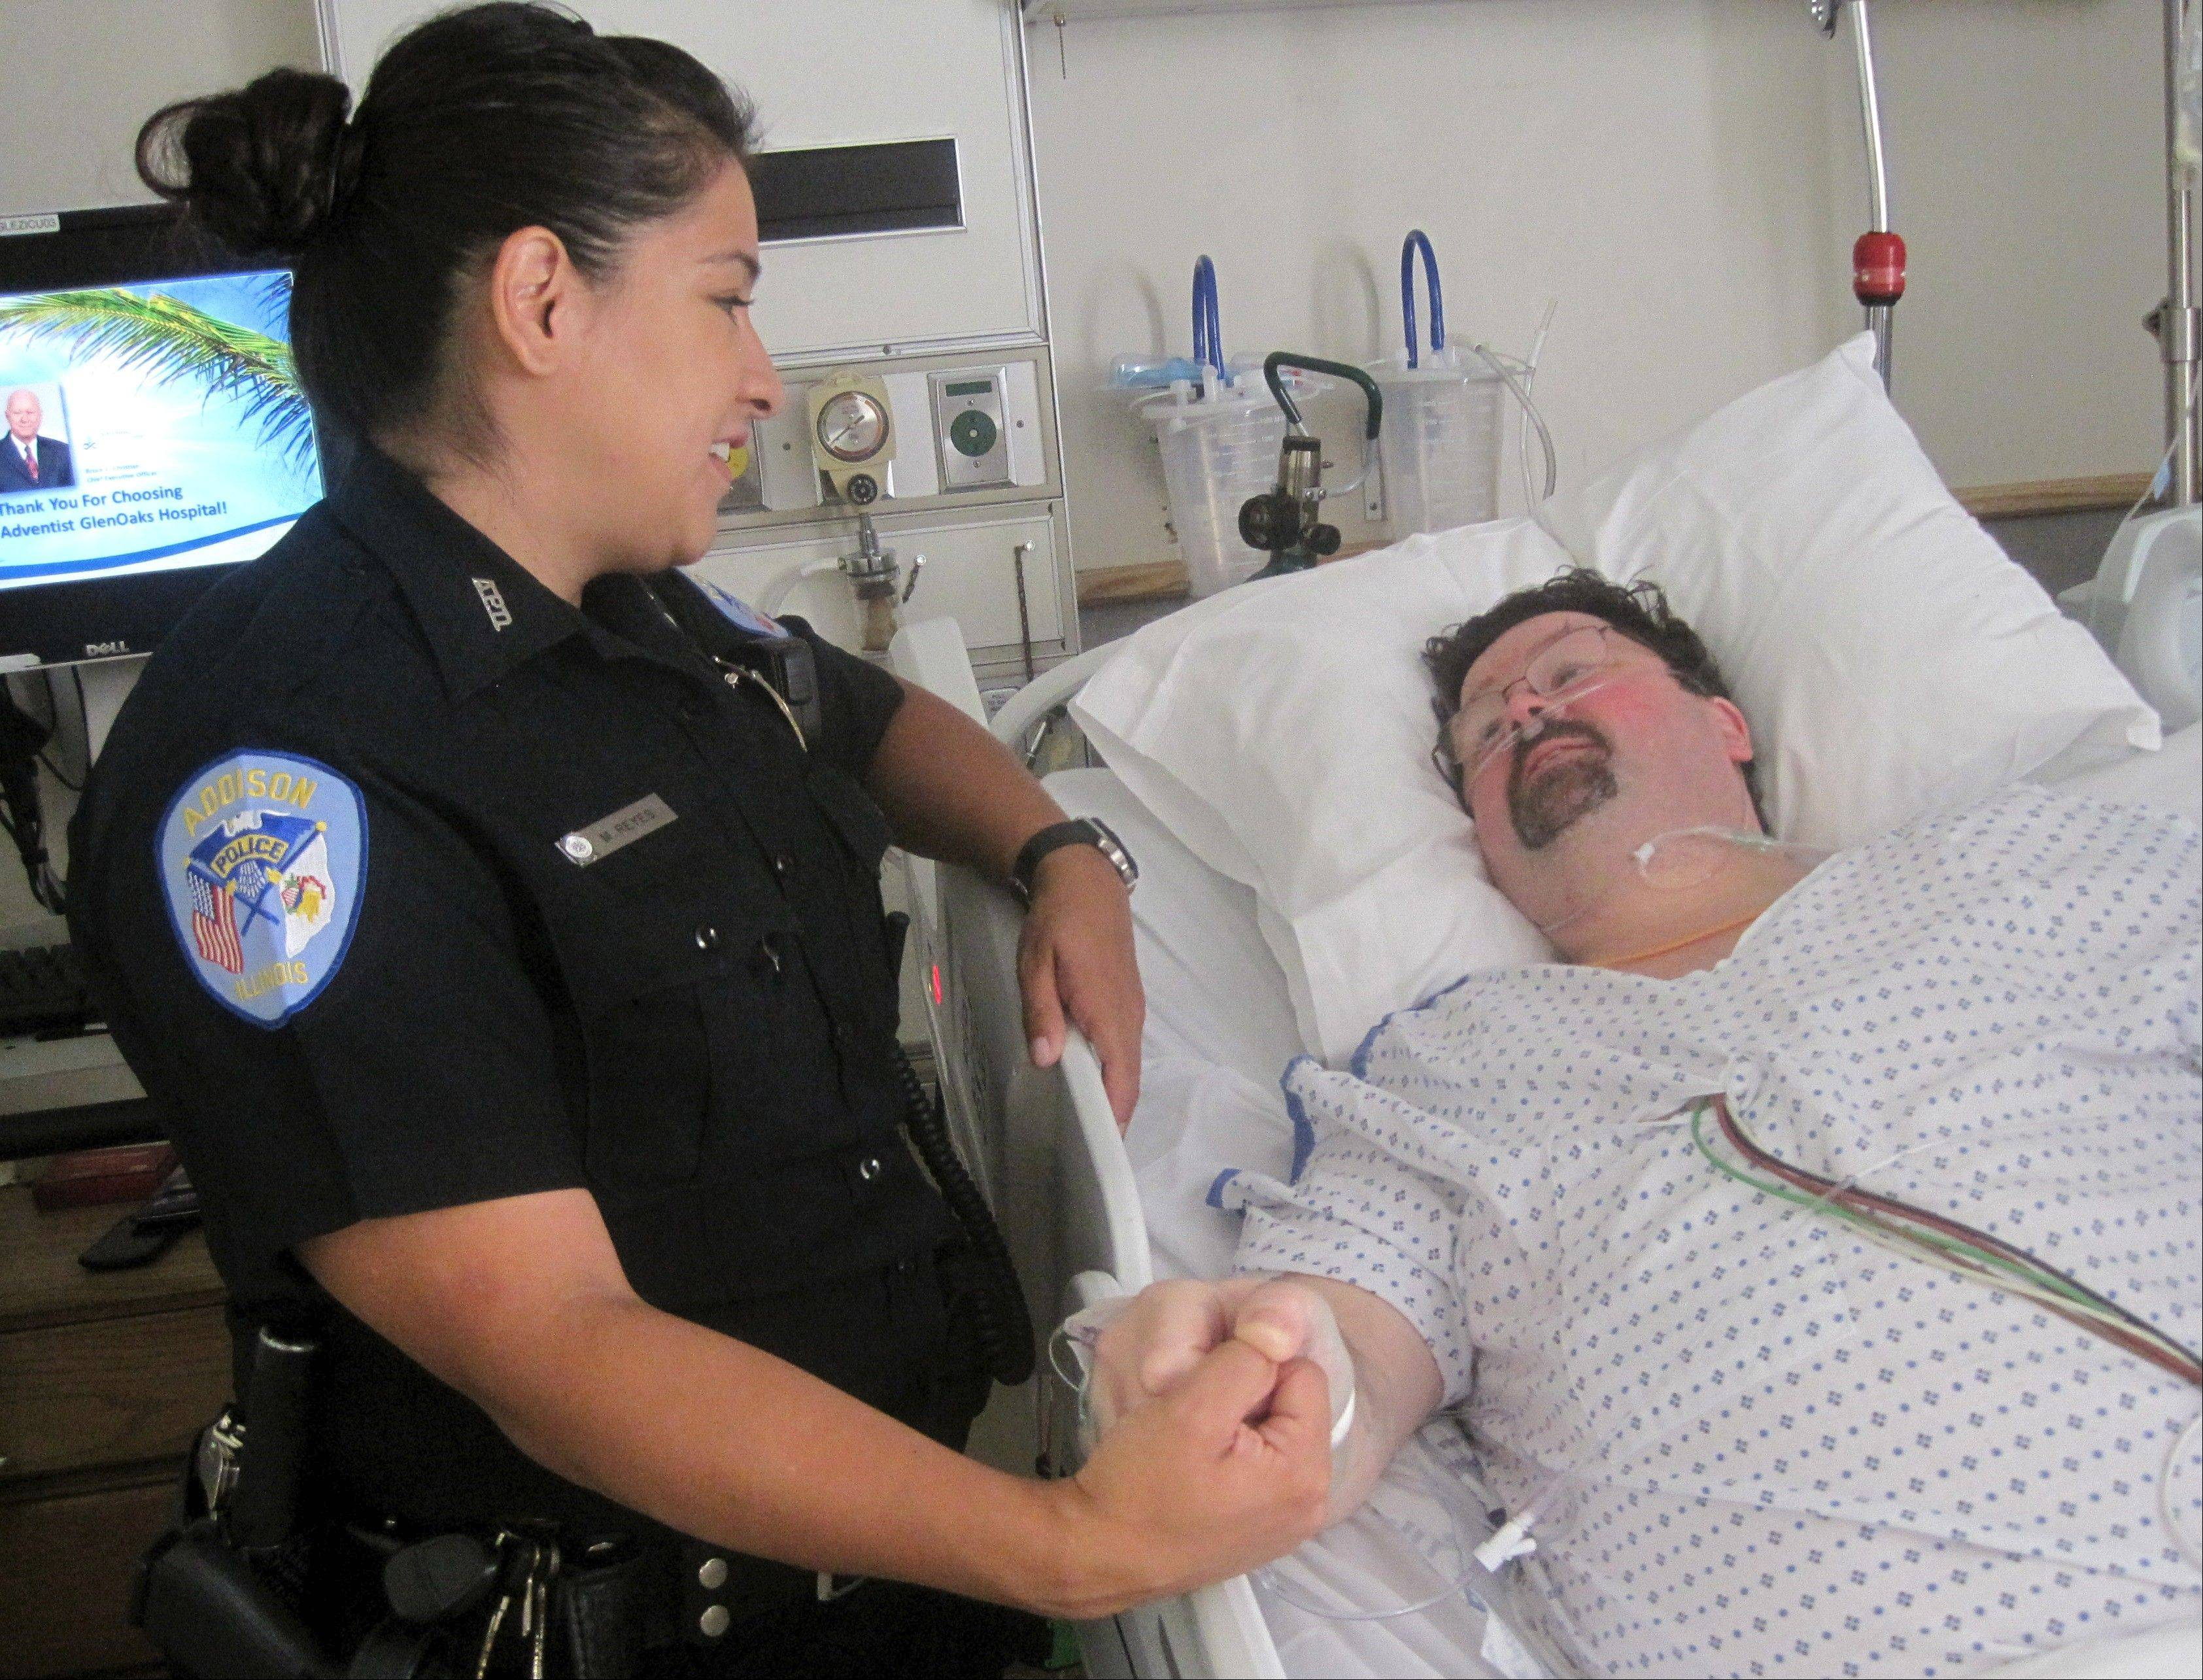 Addison Police Officer Maria Reyes and heart attack victim Ed Sullivan meet for the first time Tuesday during an emotional reunion at Adventist GlenOaks Hospital in Glendale Heights. Sullivan survived after Reyes used an automated external defibrillator to resuscitate him.